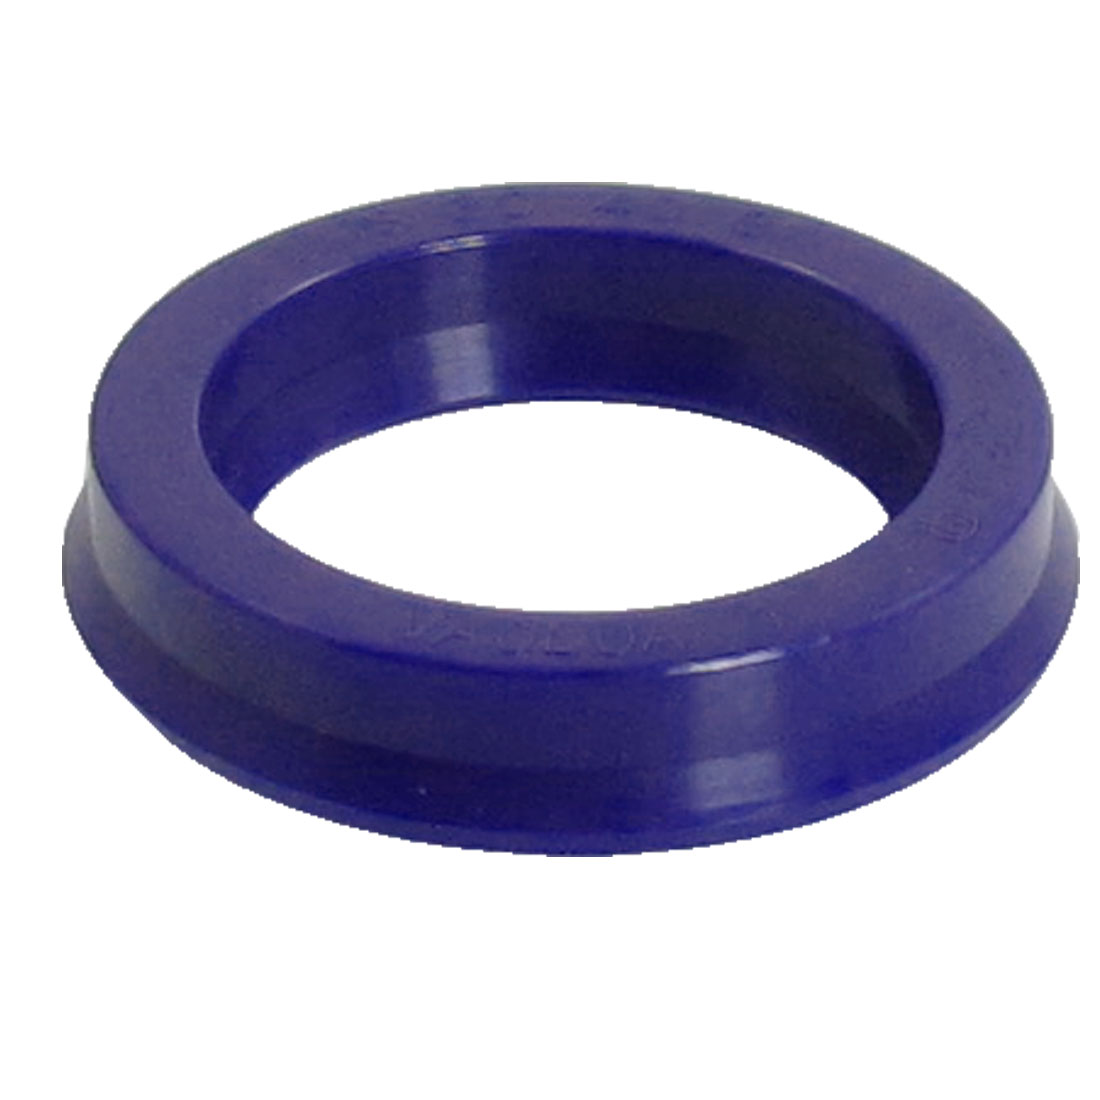 Blue PU 30mm x 40mm x 8mm Double Lip Sealing Cushion Dust Seal Ring